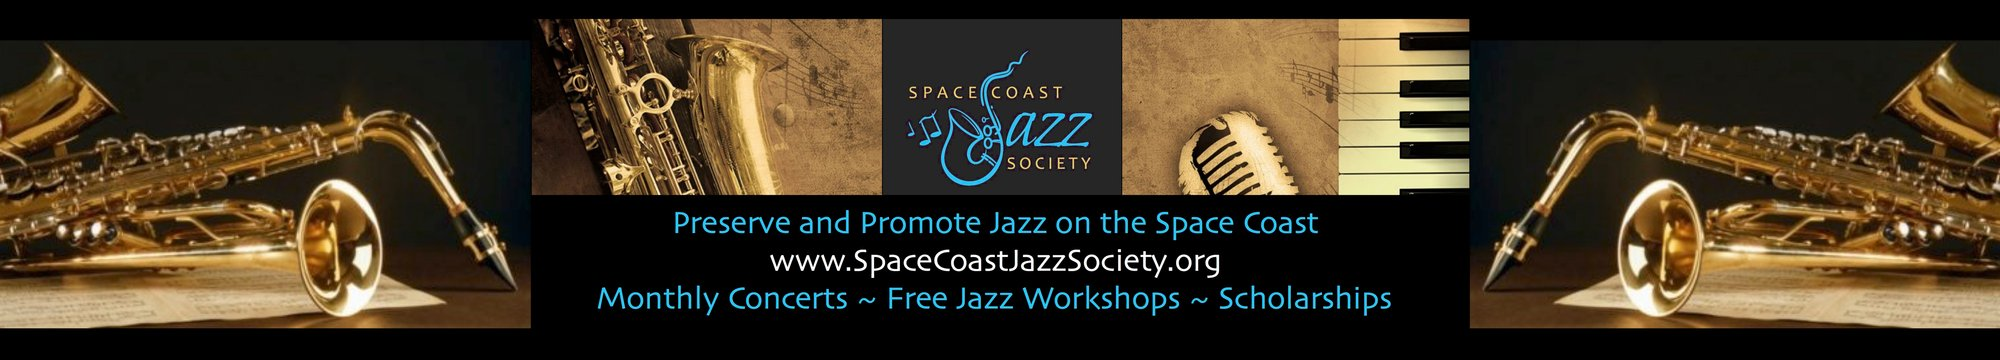 Space Coast Jazz Society Header